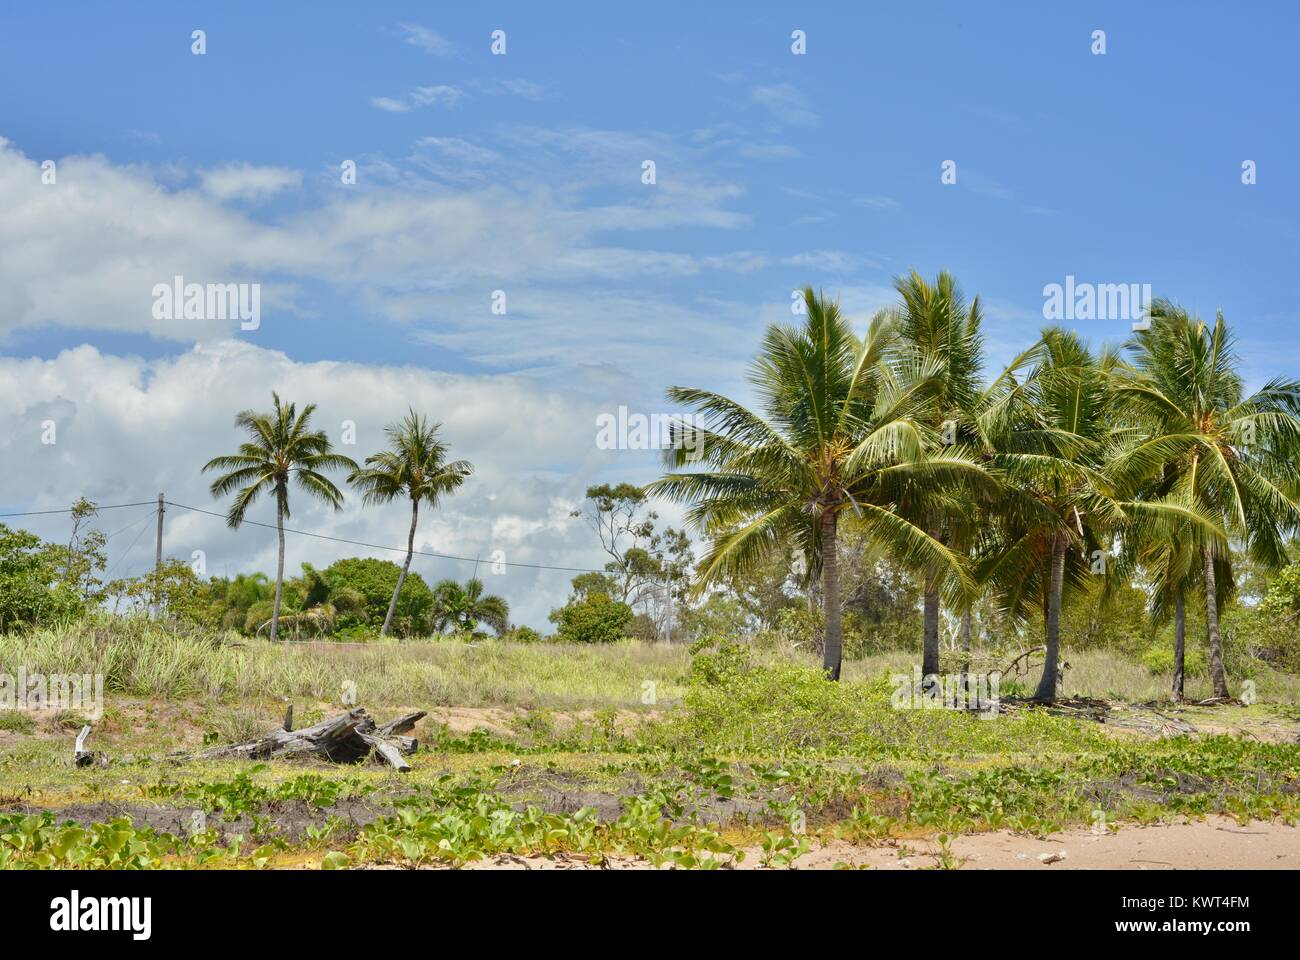 Palms powerlines goats foot plant and driftwood on Bagal Beach near Townsville, Queensland, Australia - Stock Image